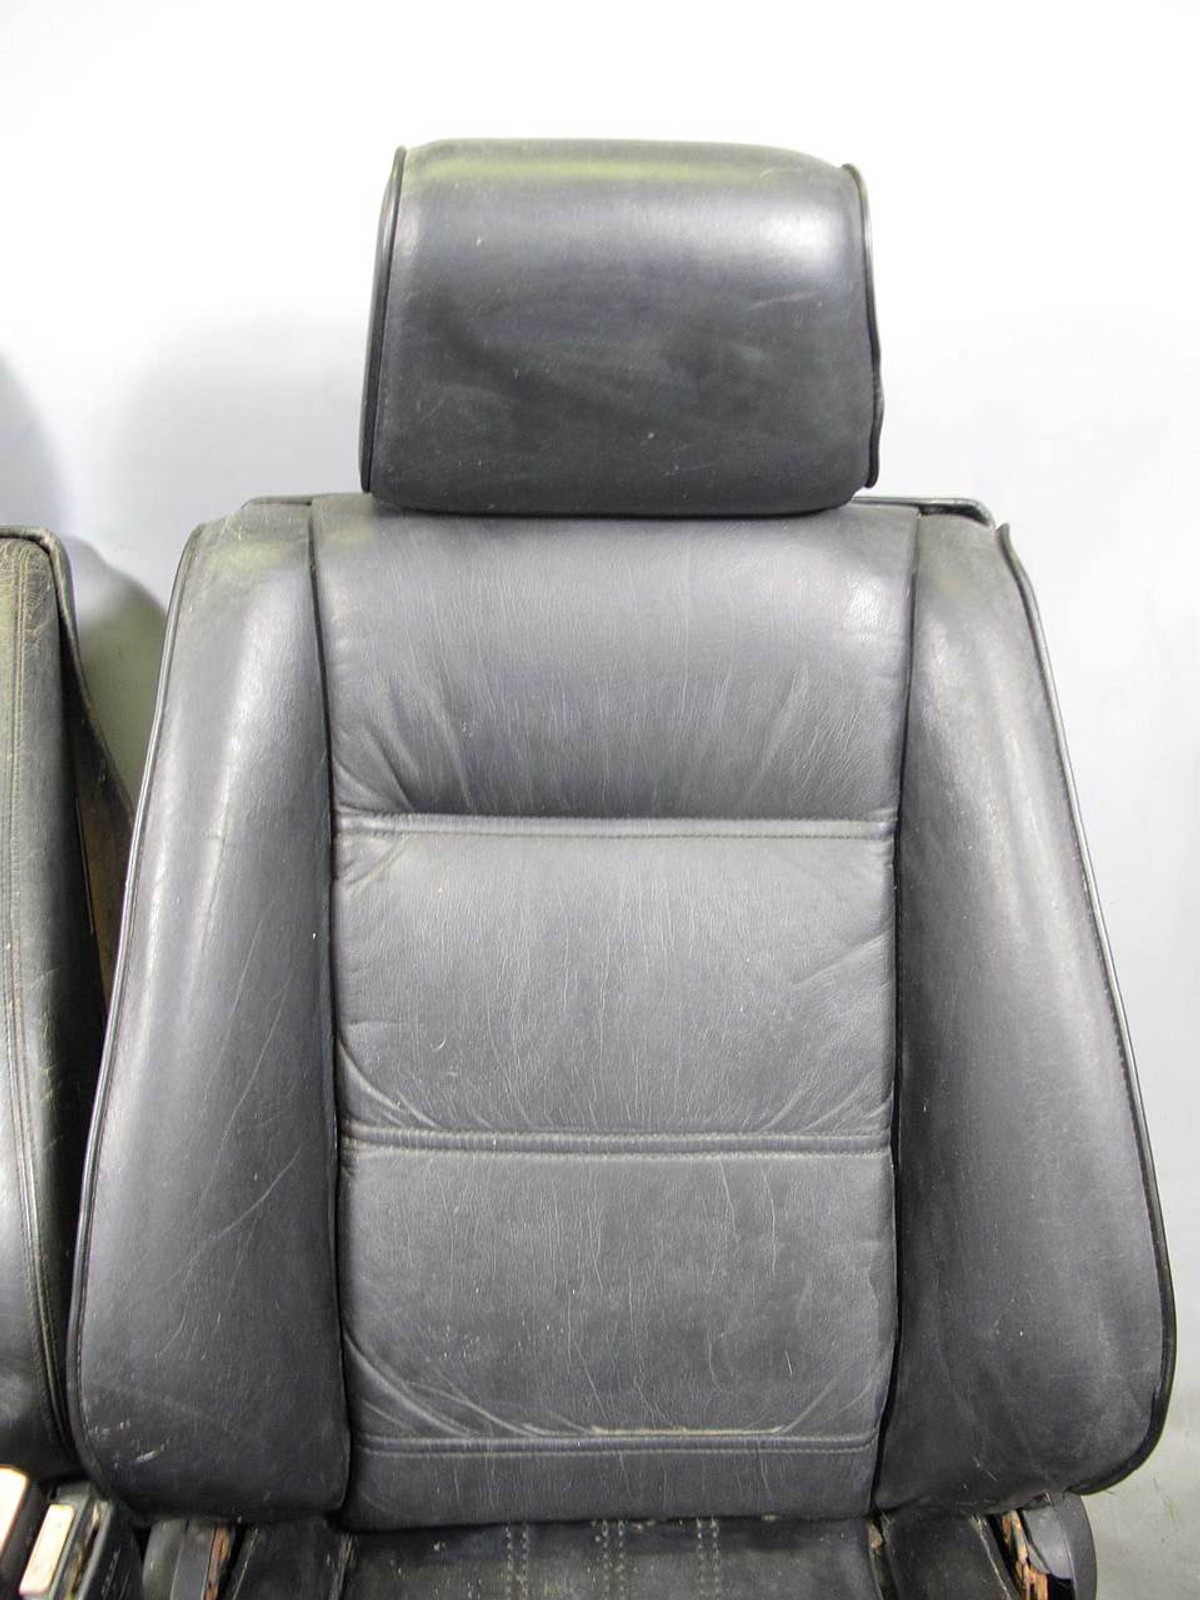 sports seats pair black leather used img bmw  [ 1200 x 1600 Pixel ]